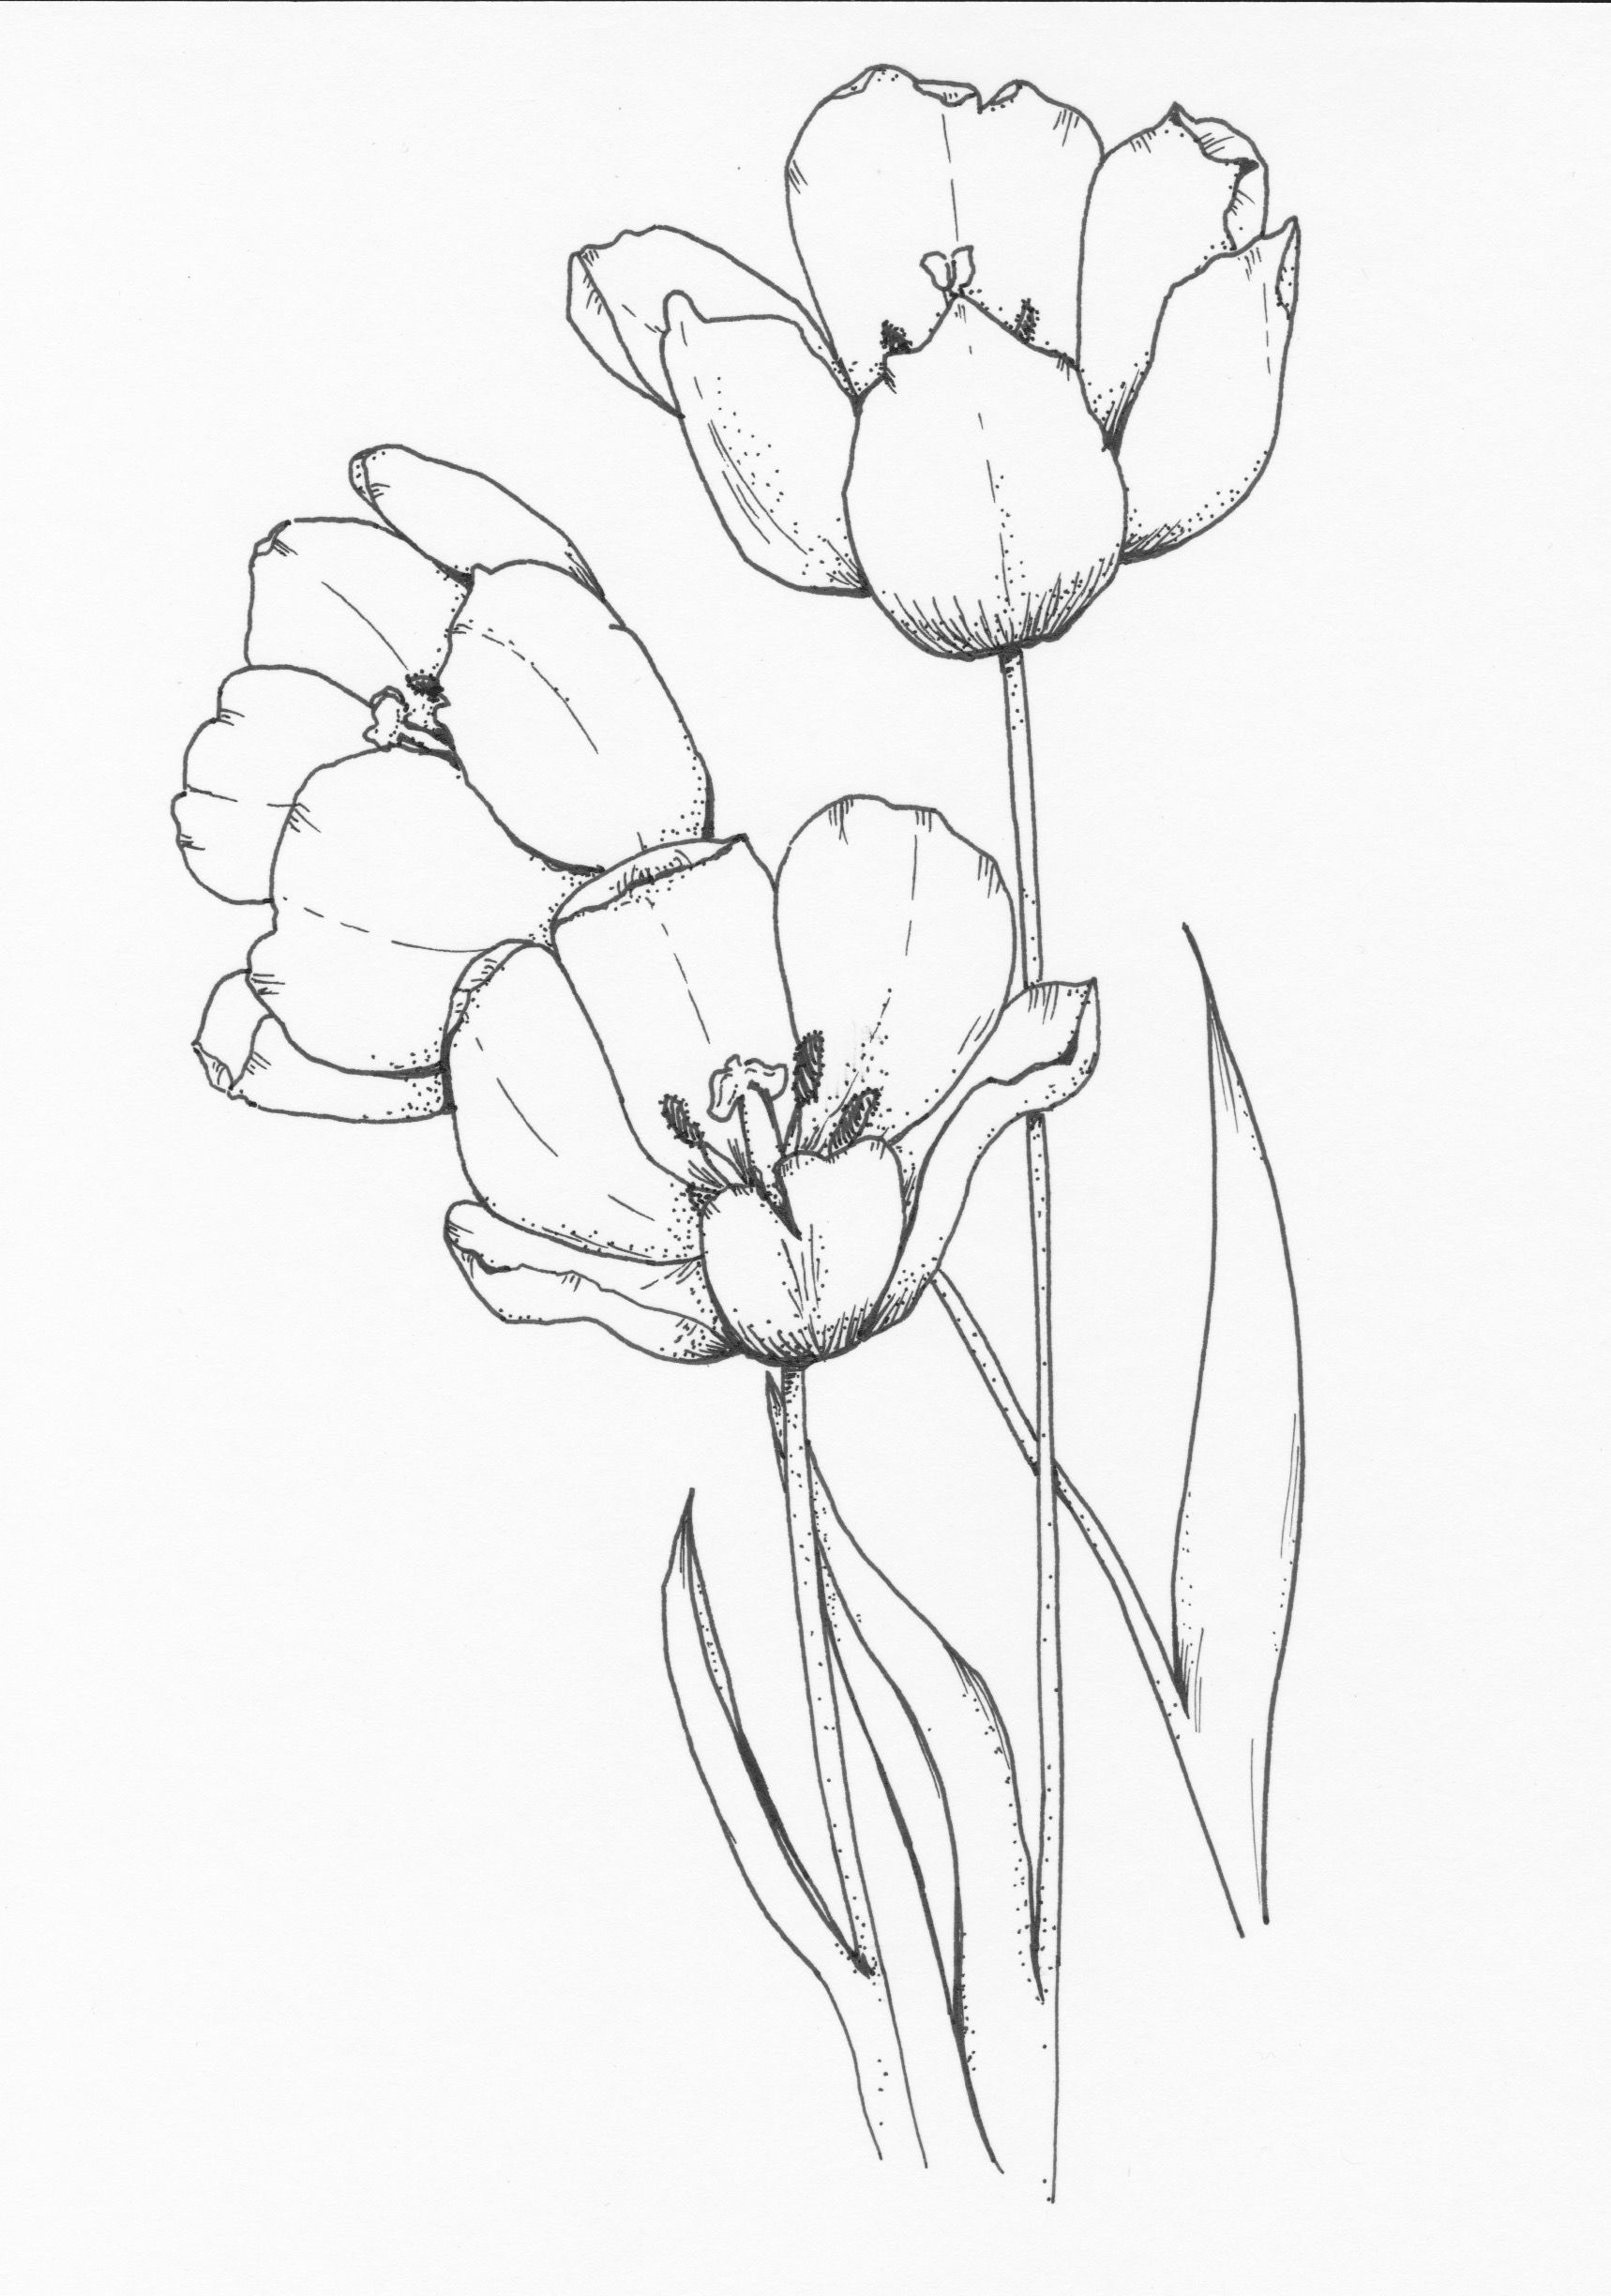 One Tulip Two Tulip Three To See More Of Our Work Go To Our Website Www Lessoeursarts Com Sketch Custom Line Art Drawings Drawings Ink Illustrations